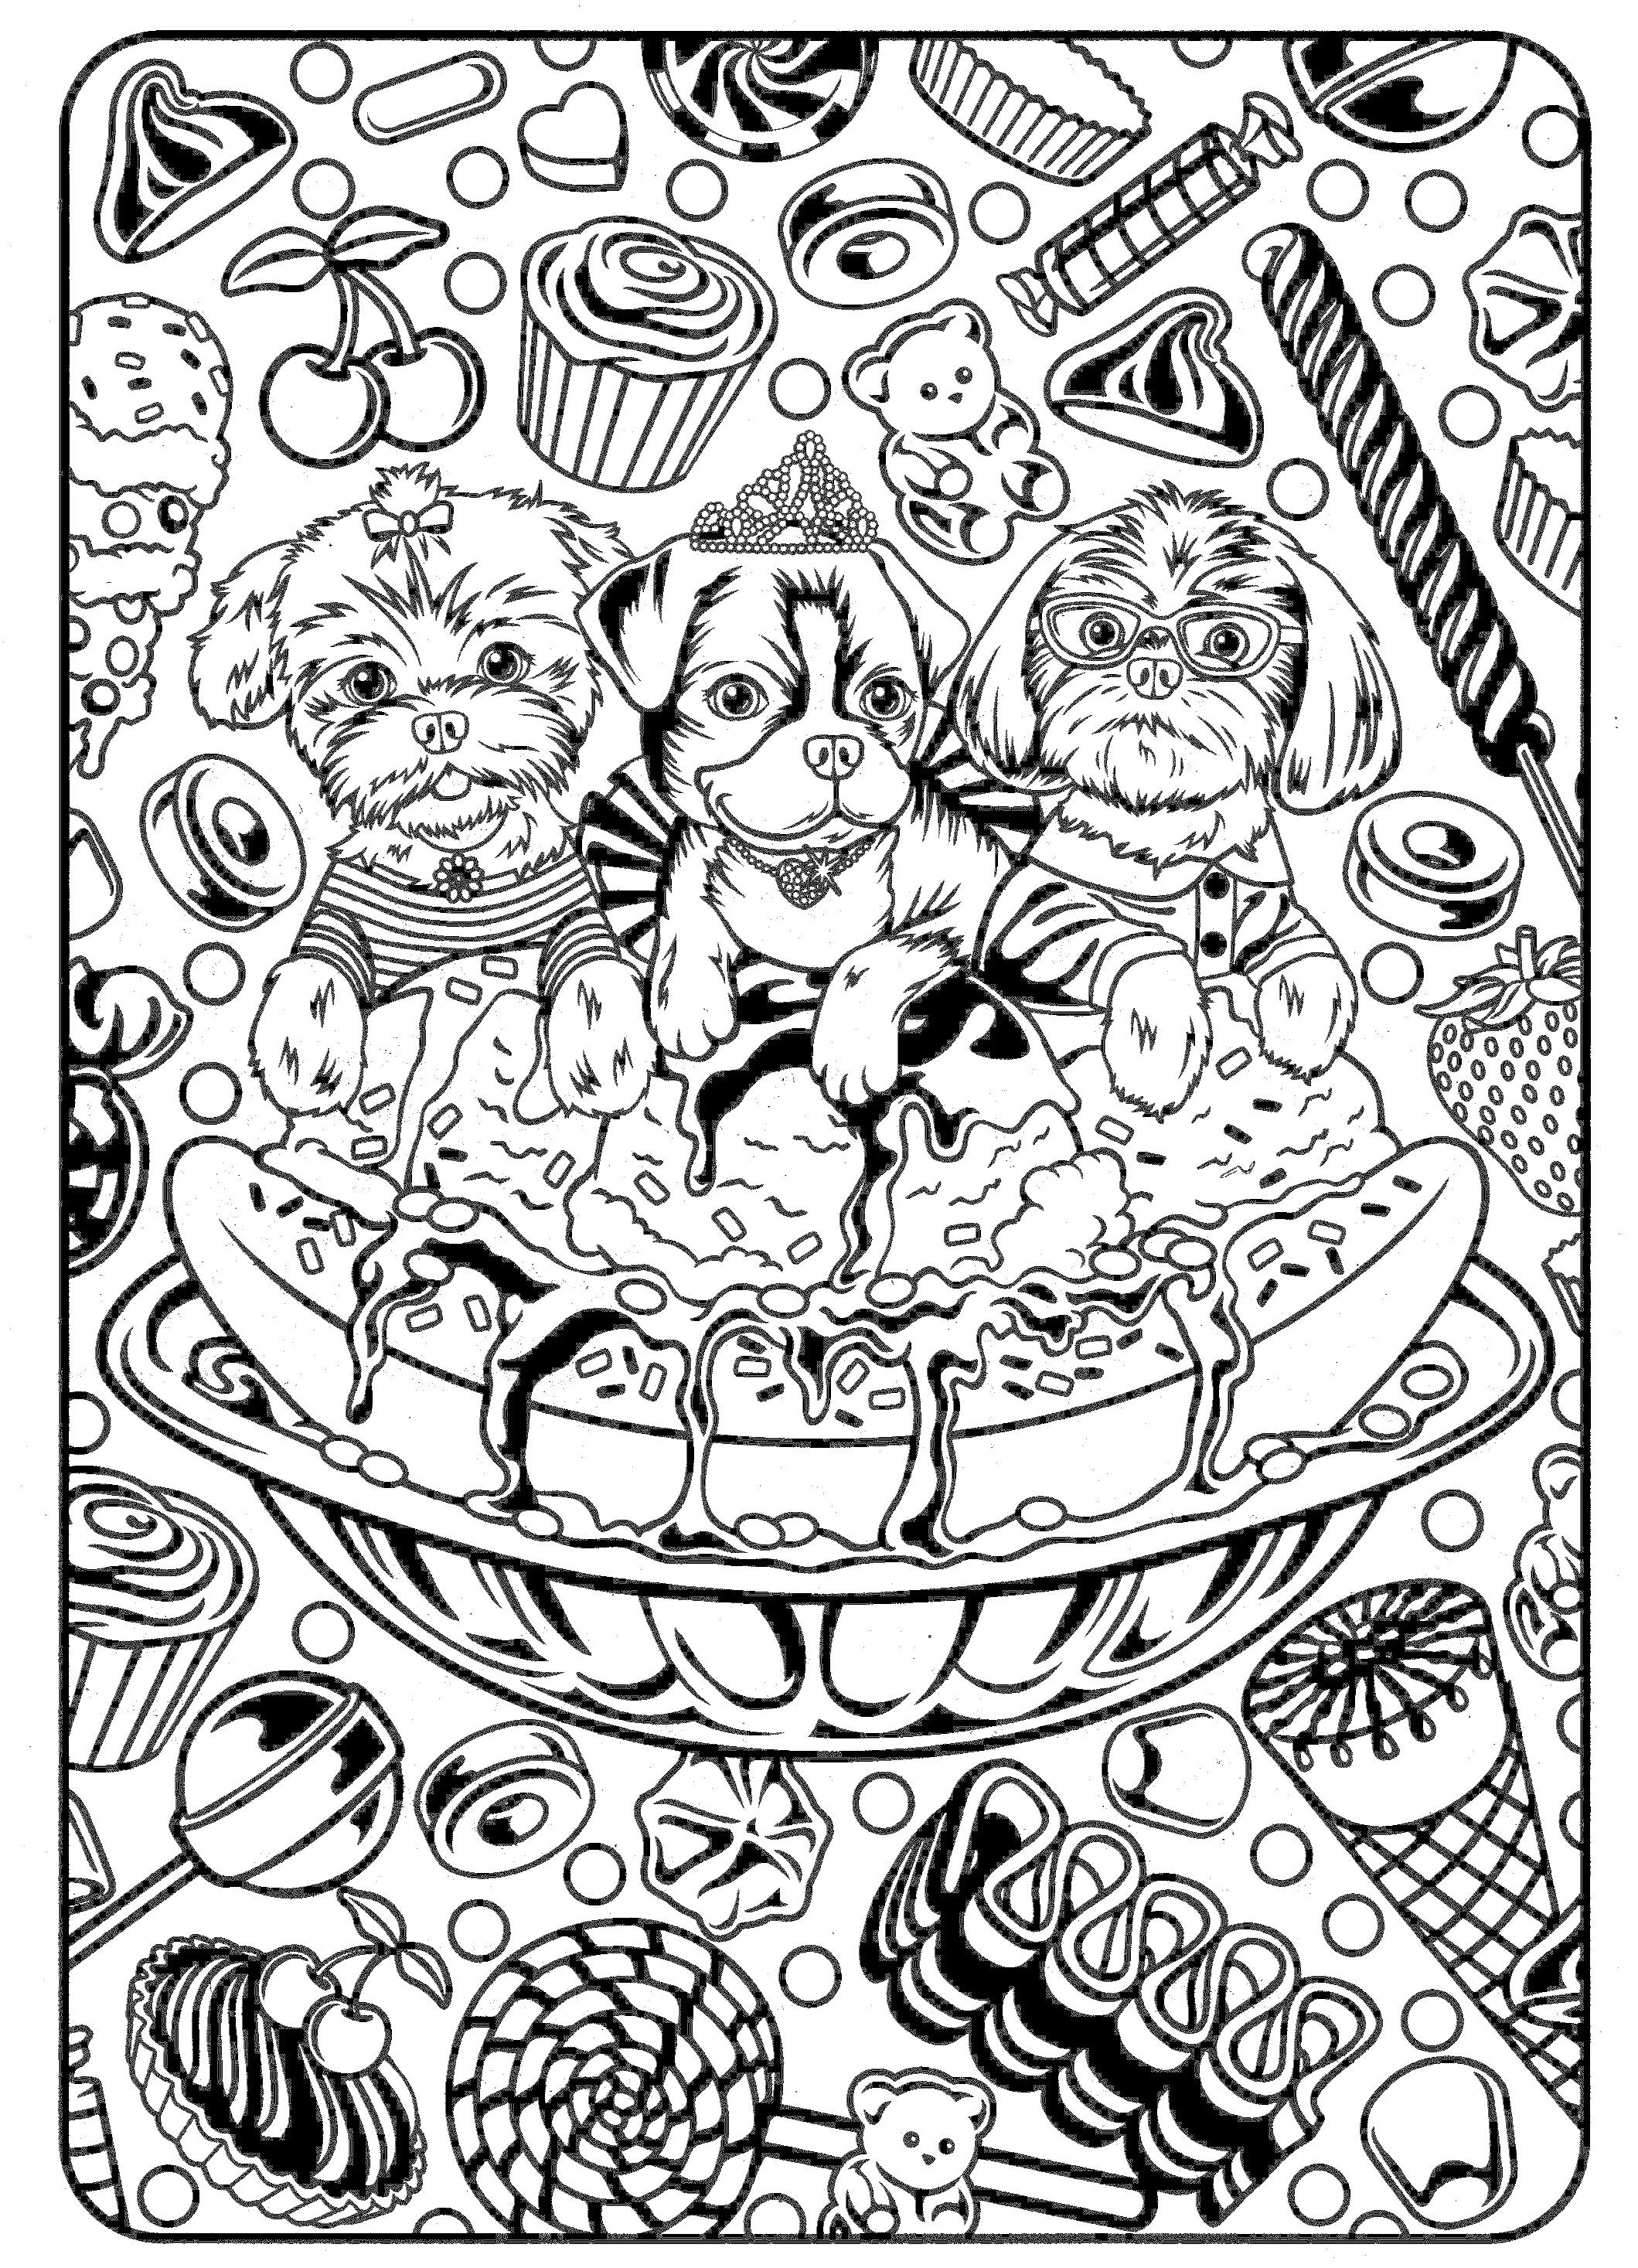 Whitman hot wheels coloring book - Lisa Frank Coloring Pages